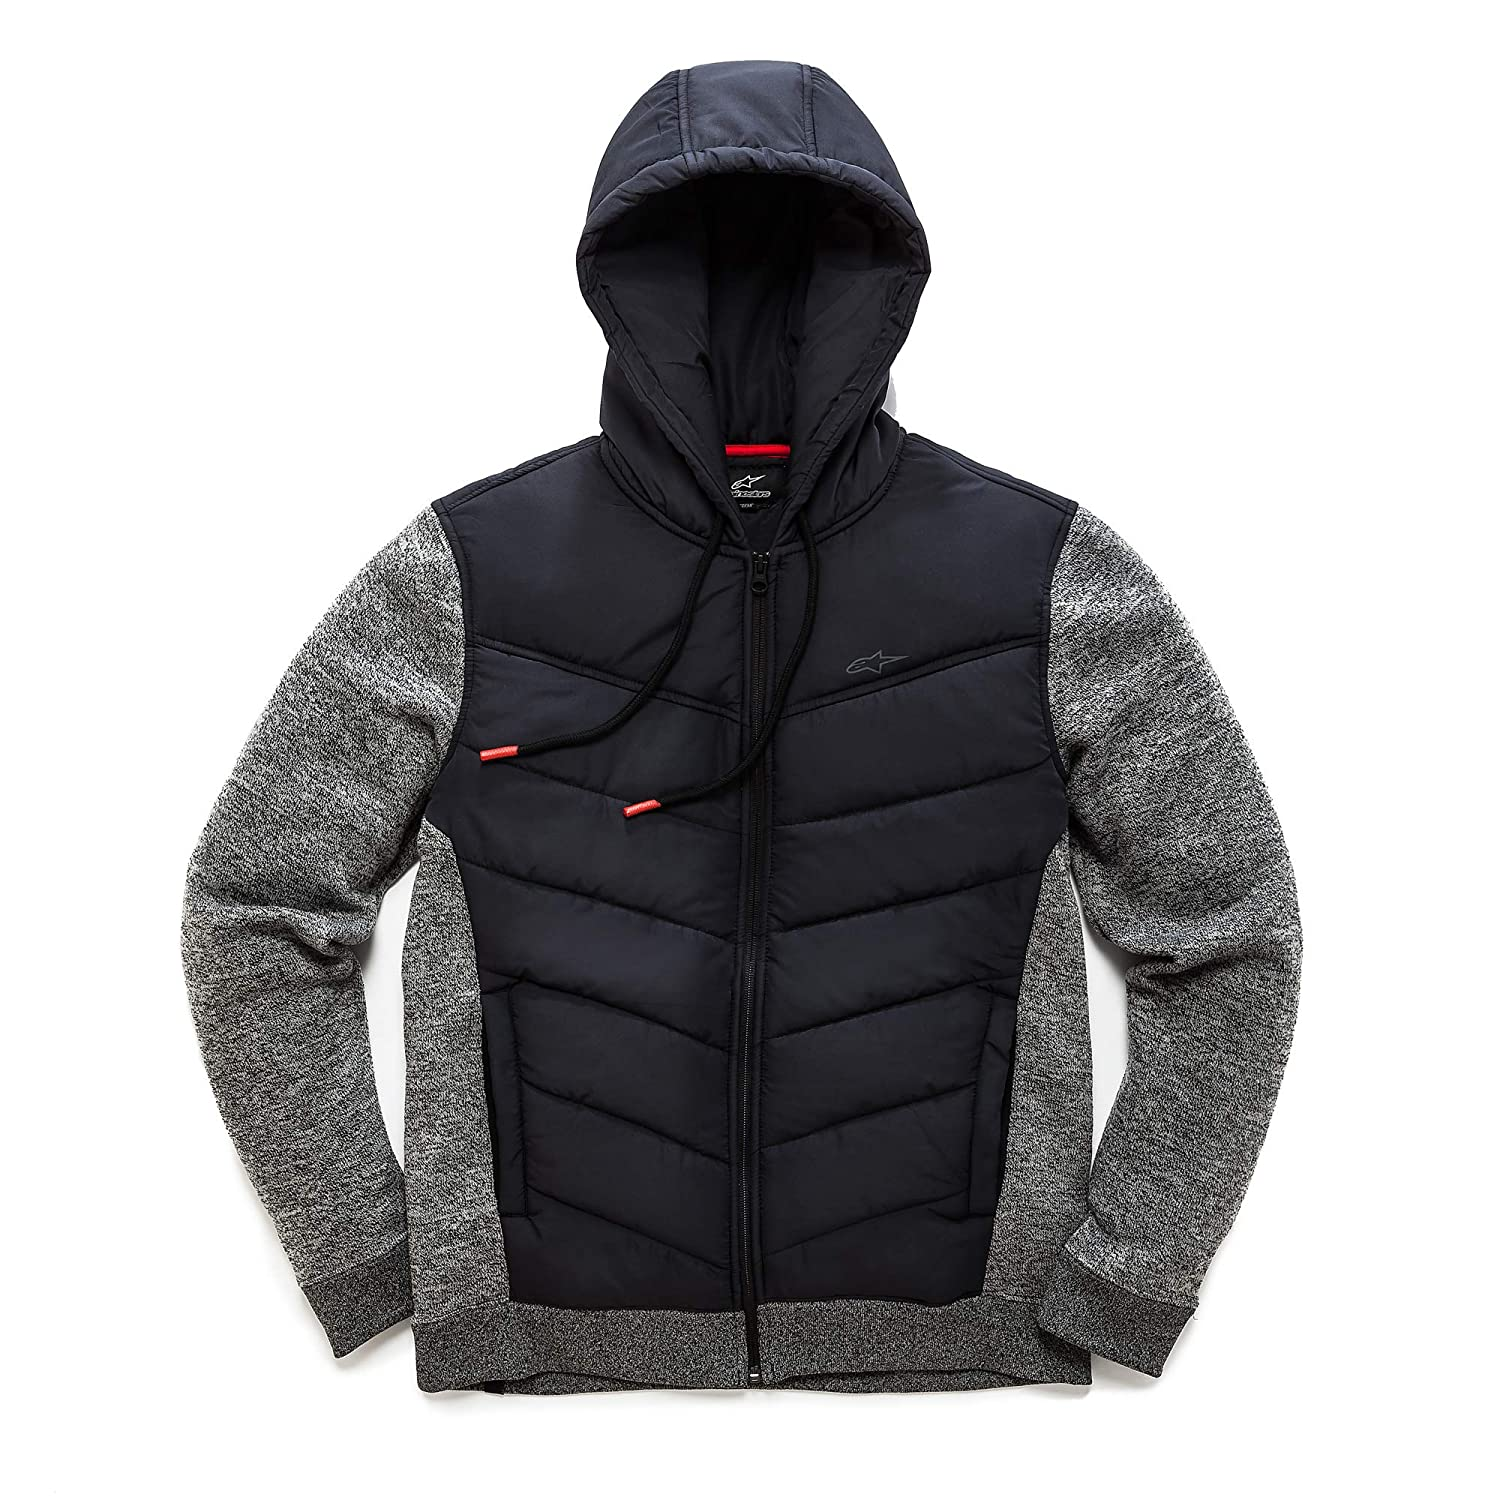 Image of Alpinestars Men's Hybrid Jacket, Quilted Hood and Chest, Stretch Fleece